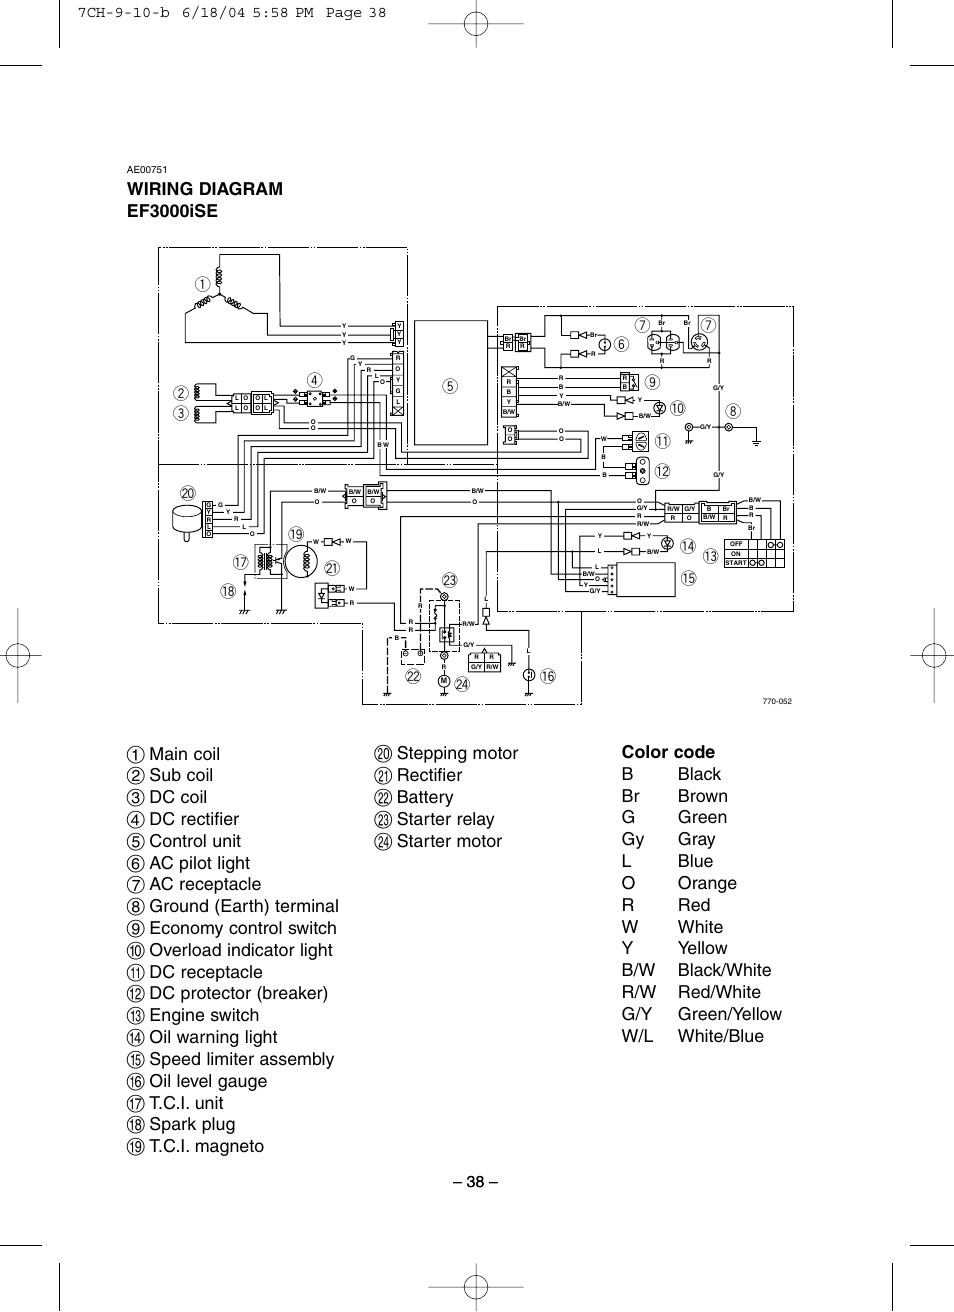 [DIAGRAM_1JK]  58246A Ac Wiring Black White Green | Wiring Library | Gm 10465385 Starter Wiring Diagram |  | Wiring Library